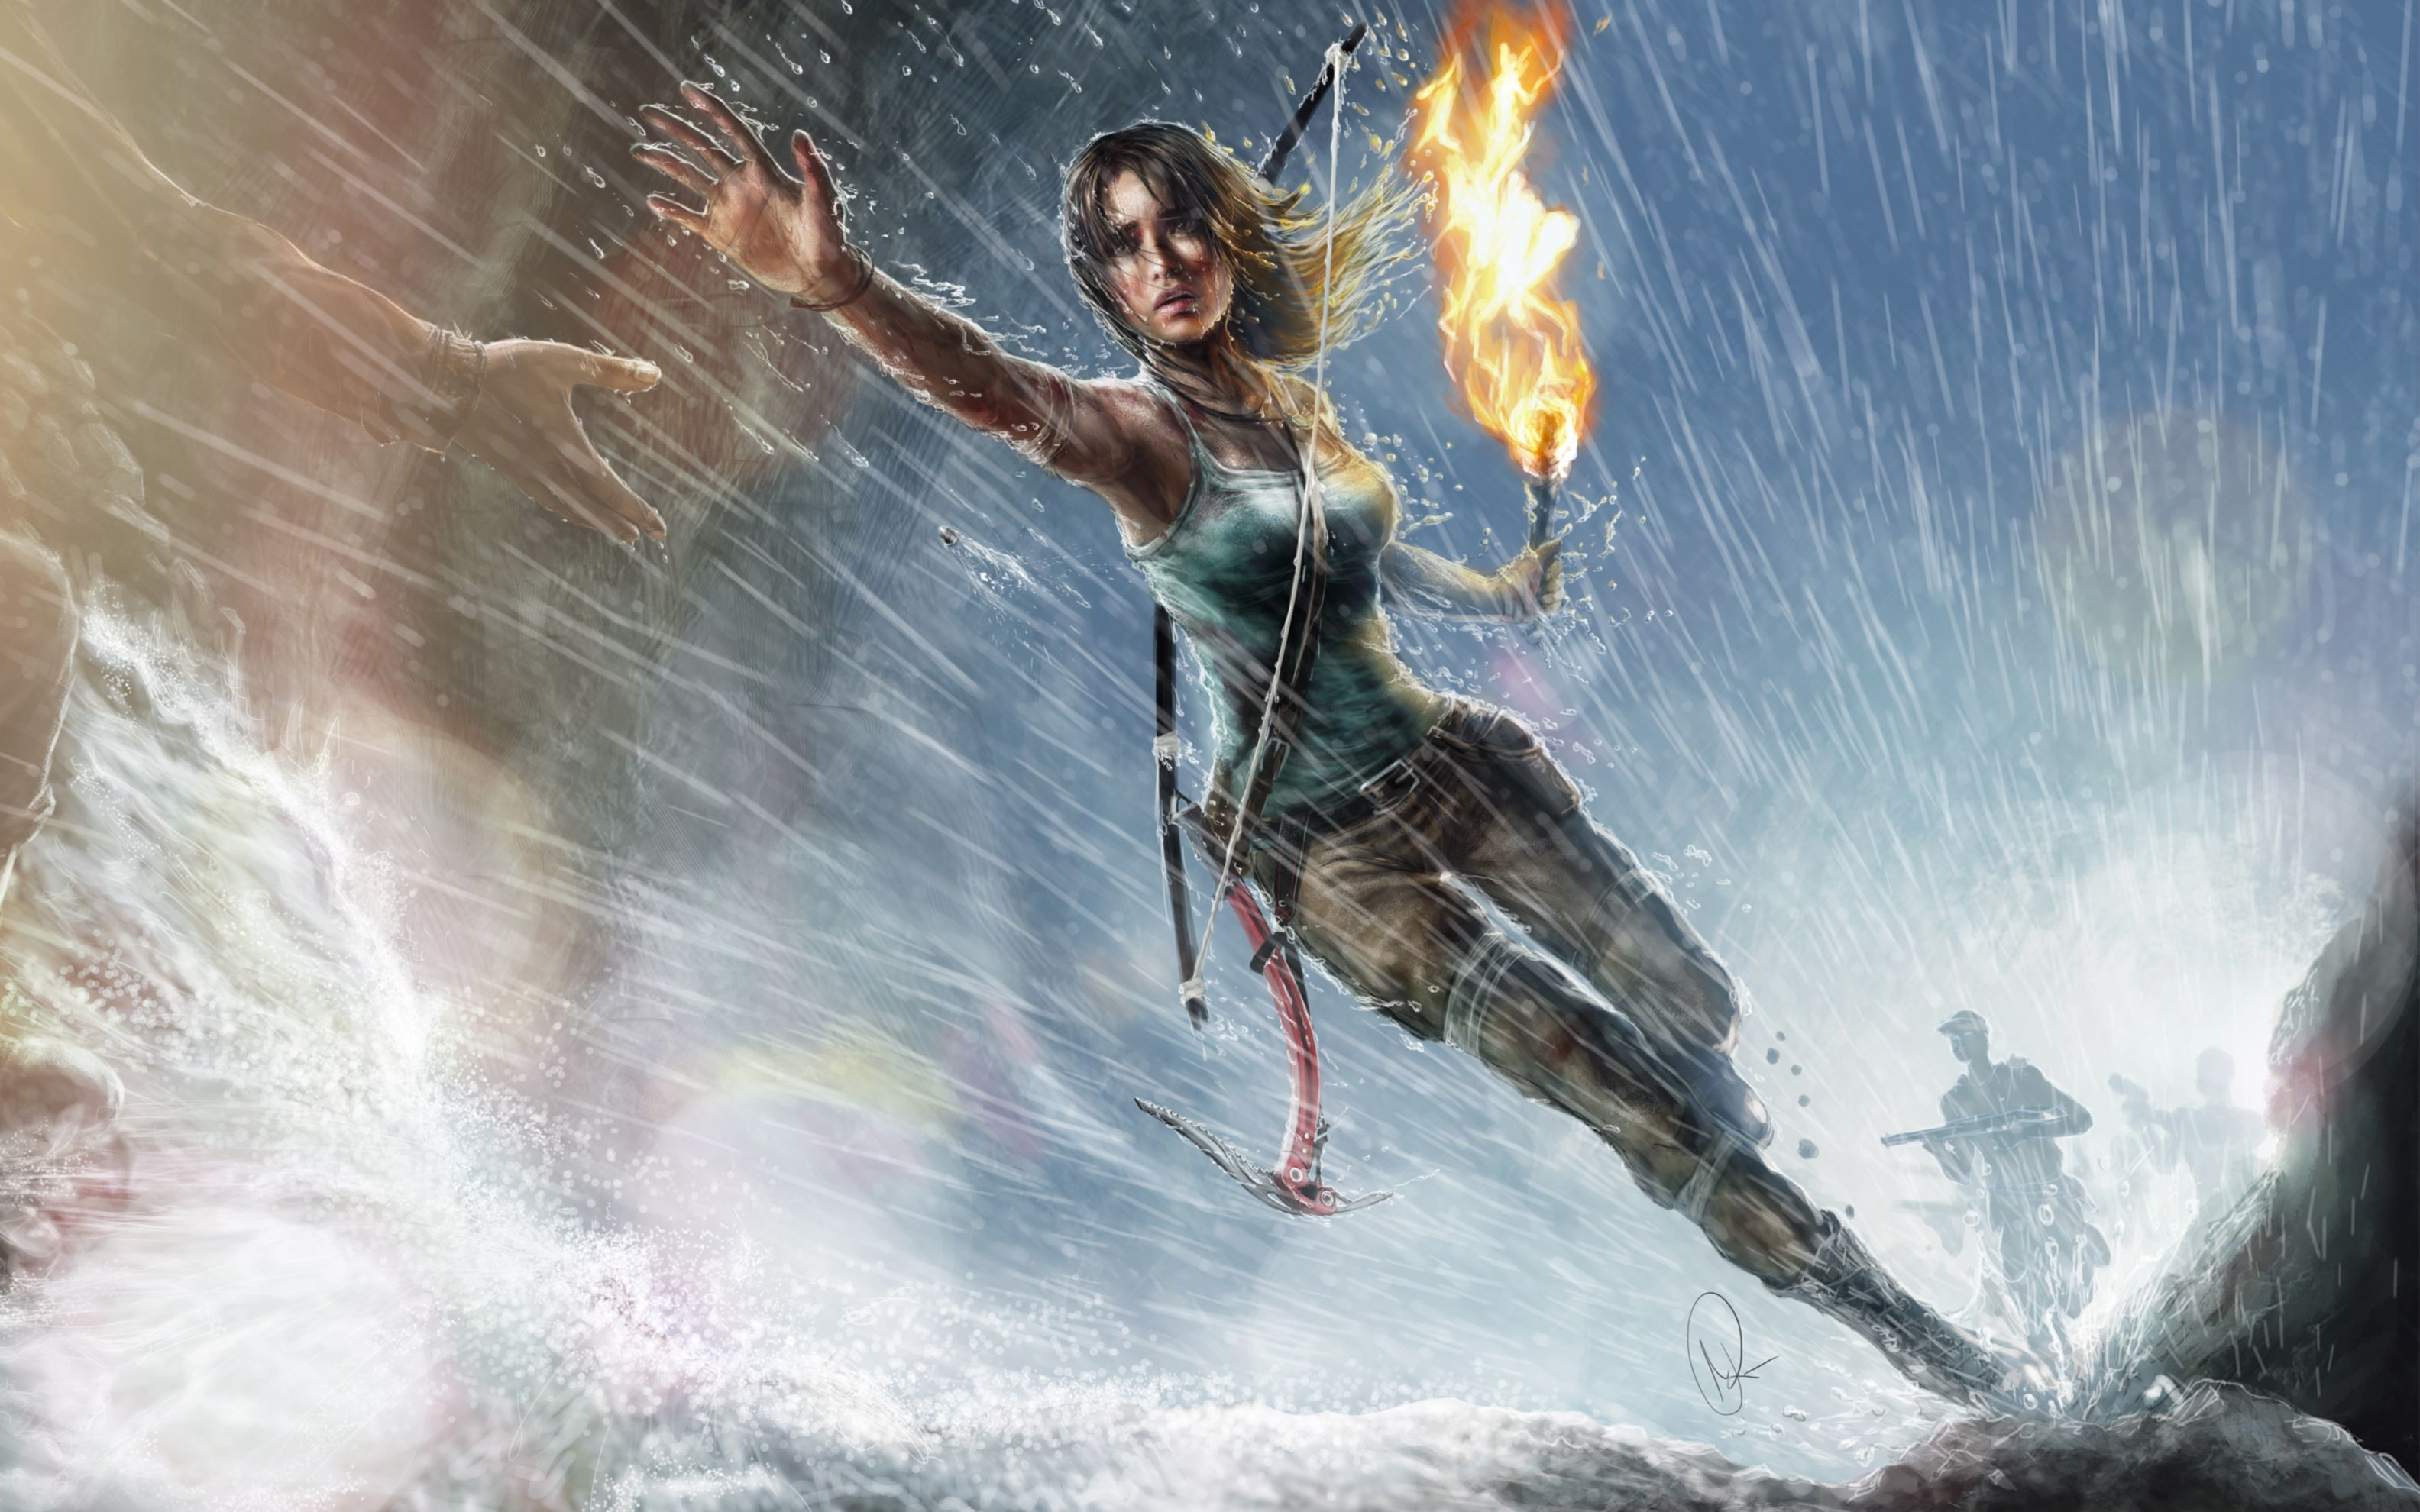 Download free HD Lara Croft Artwork Wide Wallpaper, image